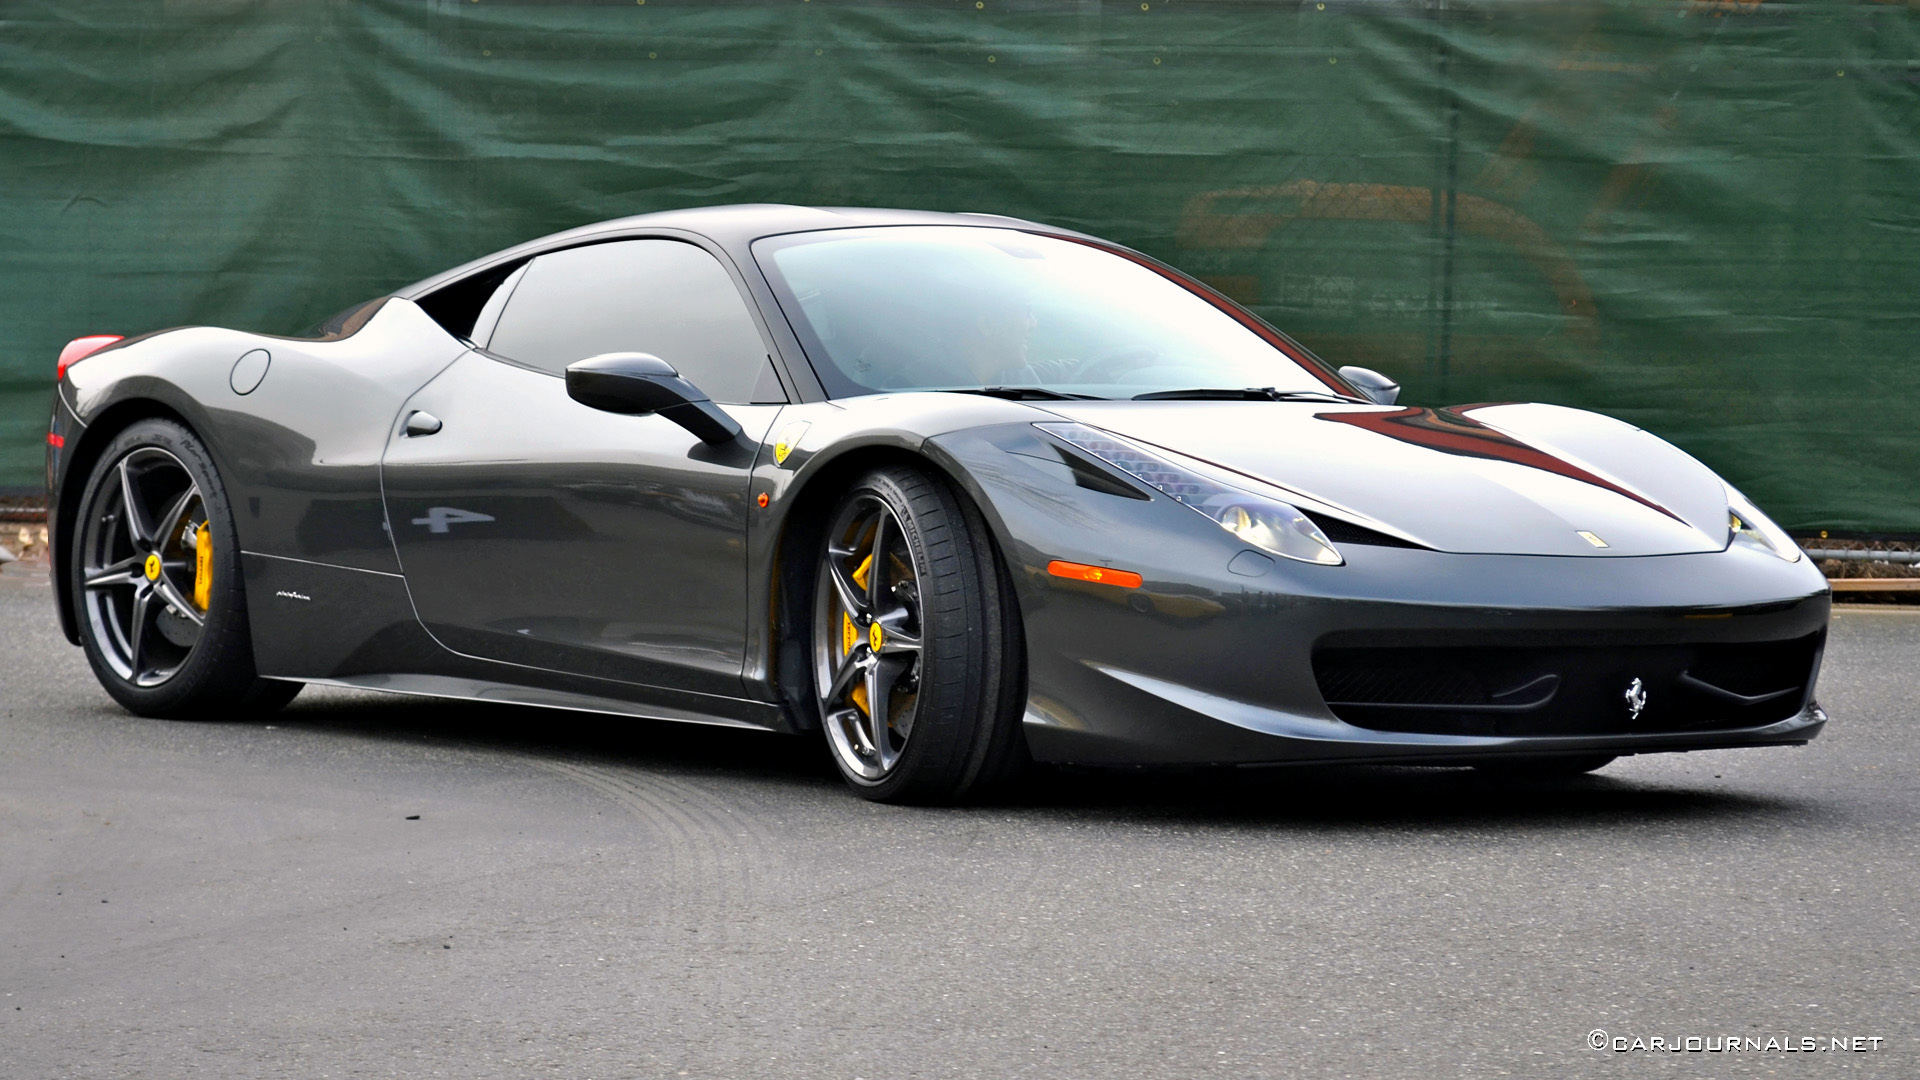 HD Wallpapers   Ferrari 458 Italia   Car Journals